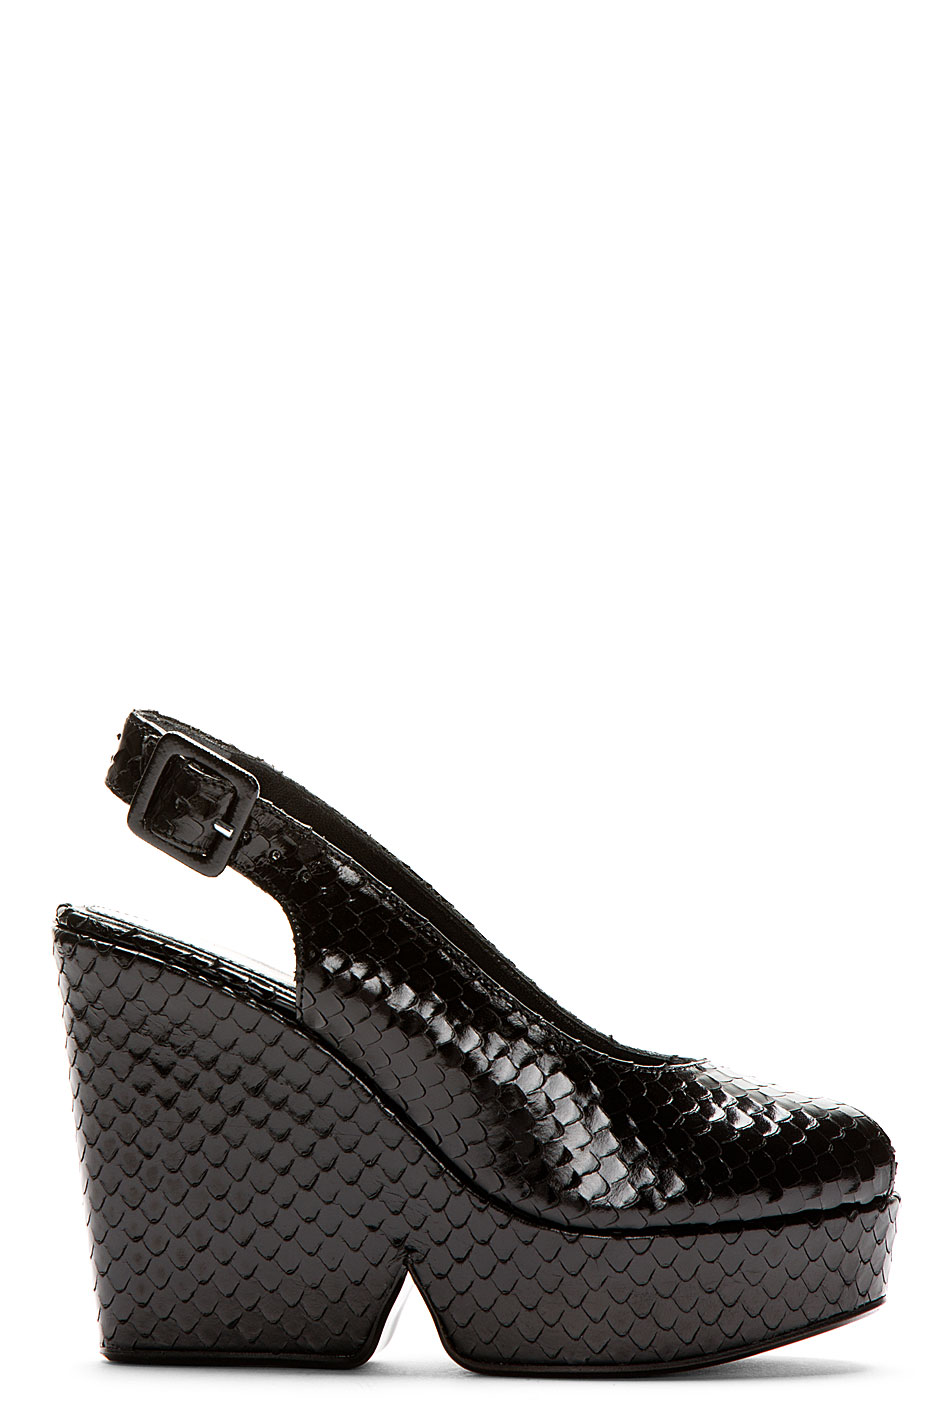 Robert clergerie black snakeskin dylanh wedge sandals